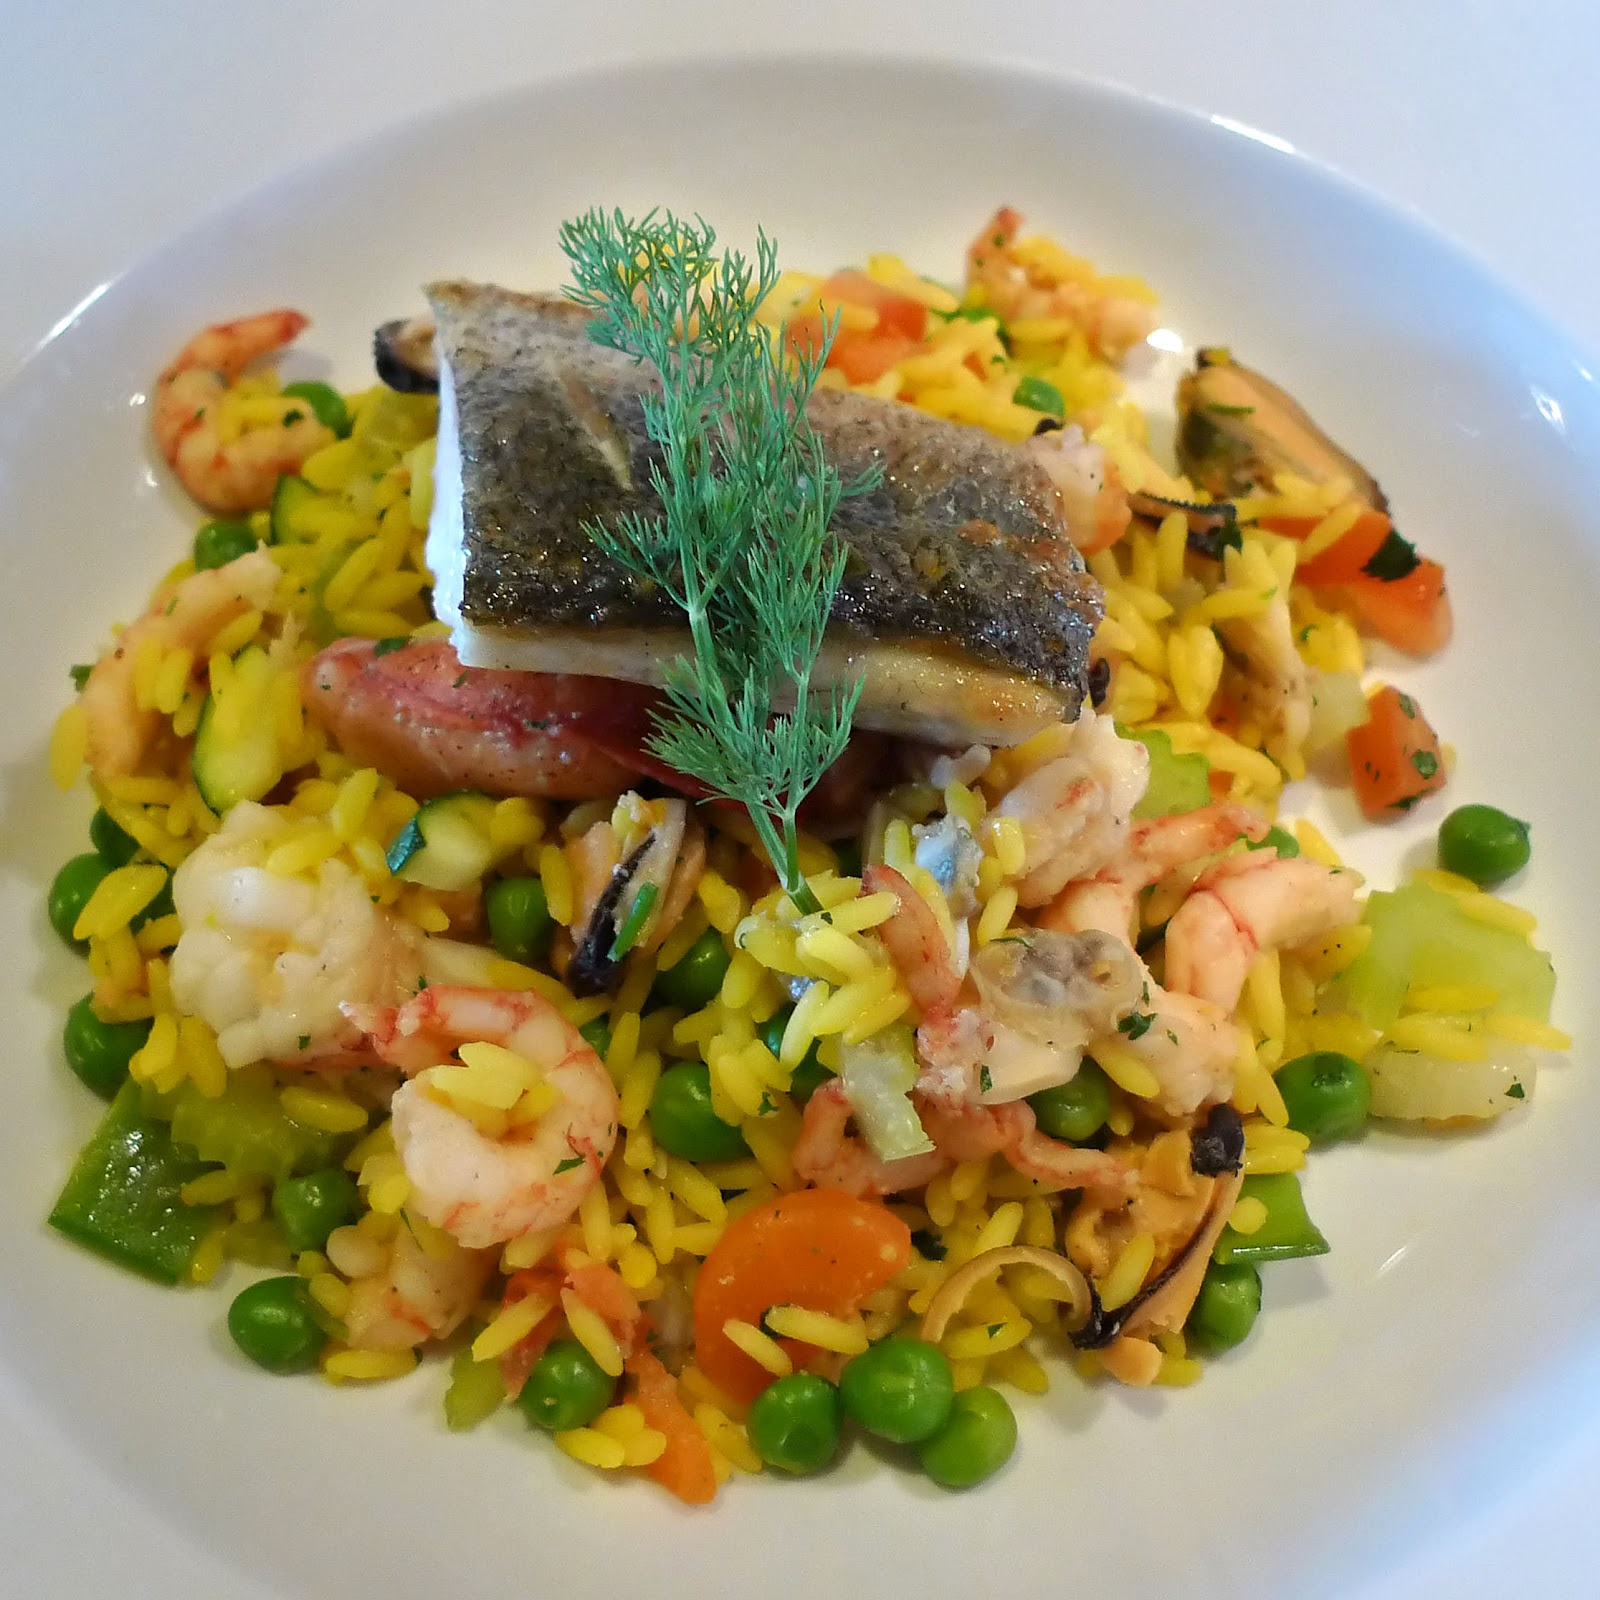 File:Portion of seafood paella on plate.jpg - Wikimedia Commons